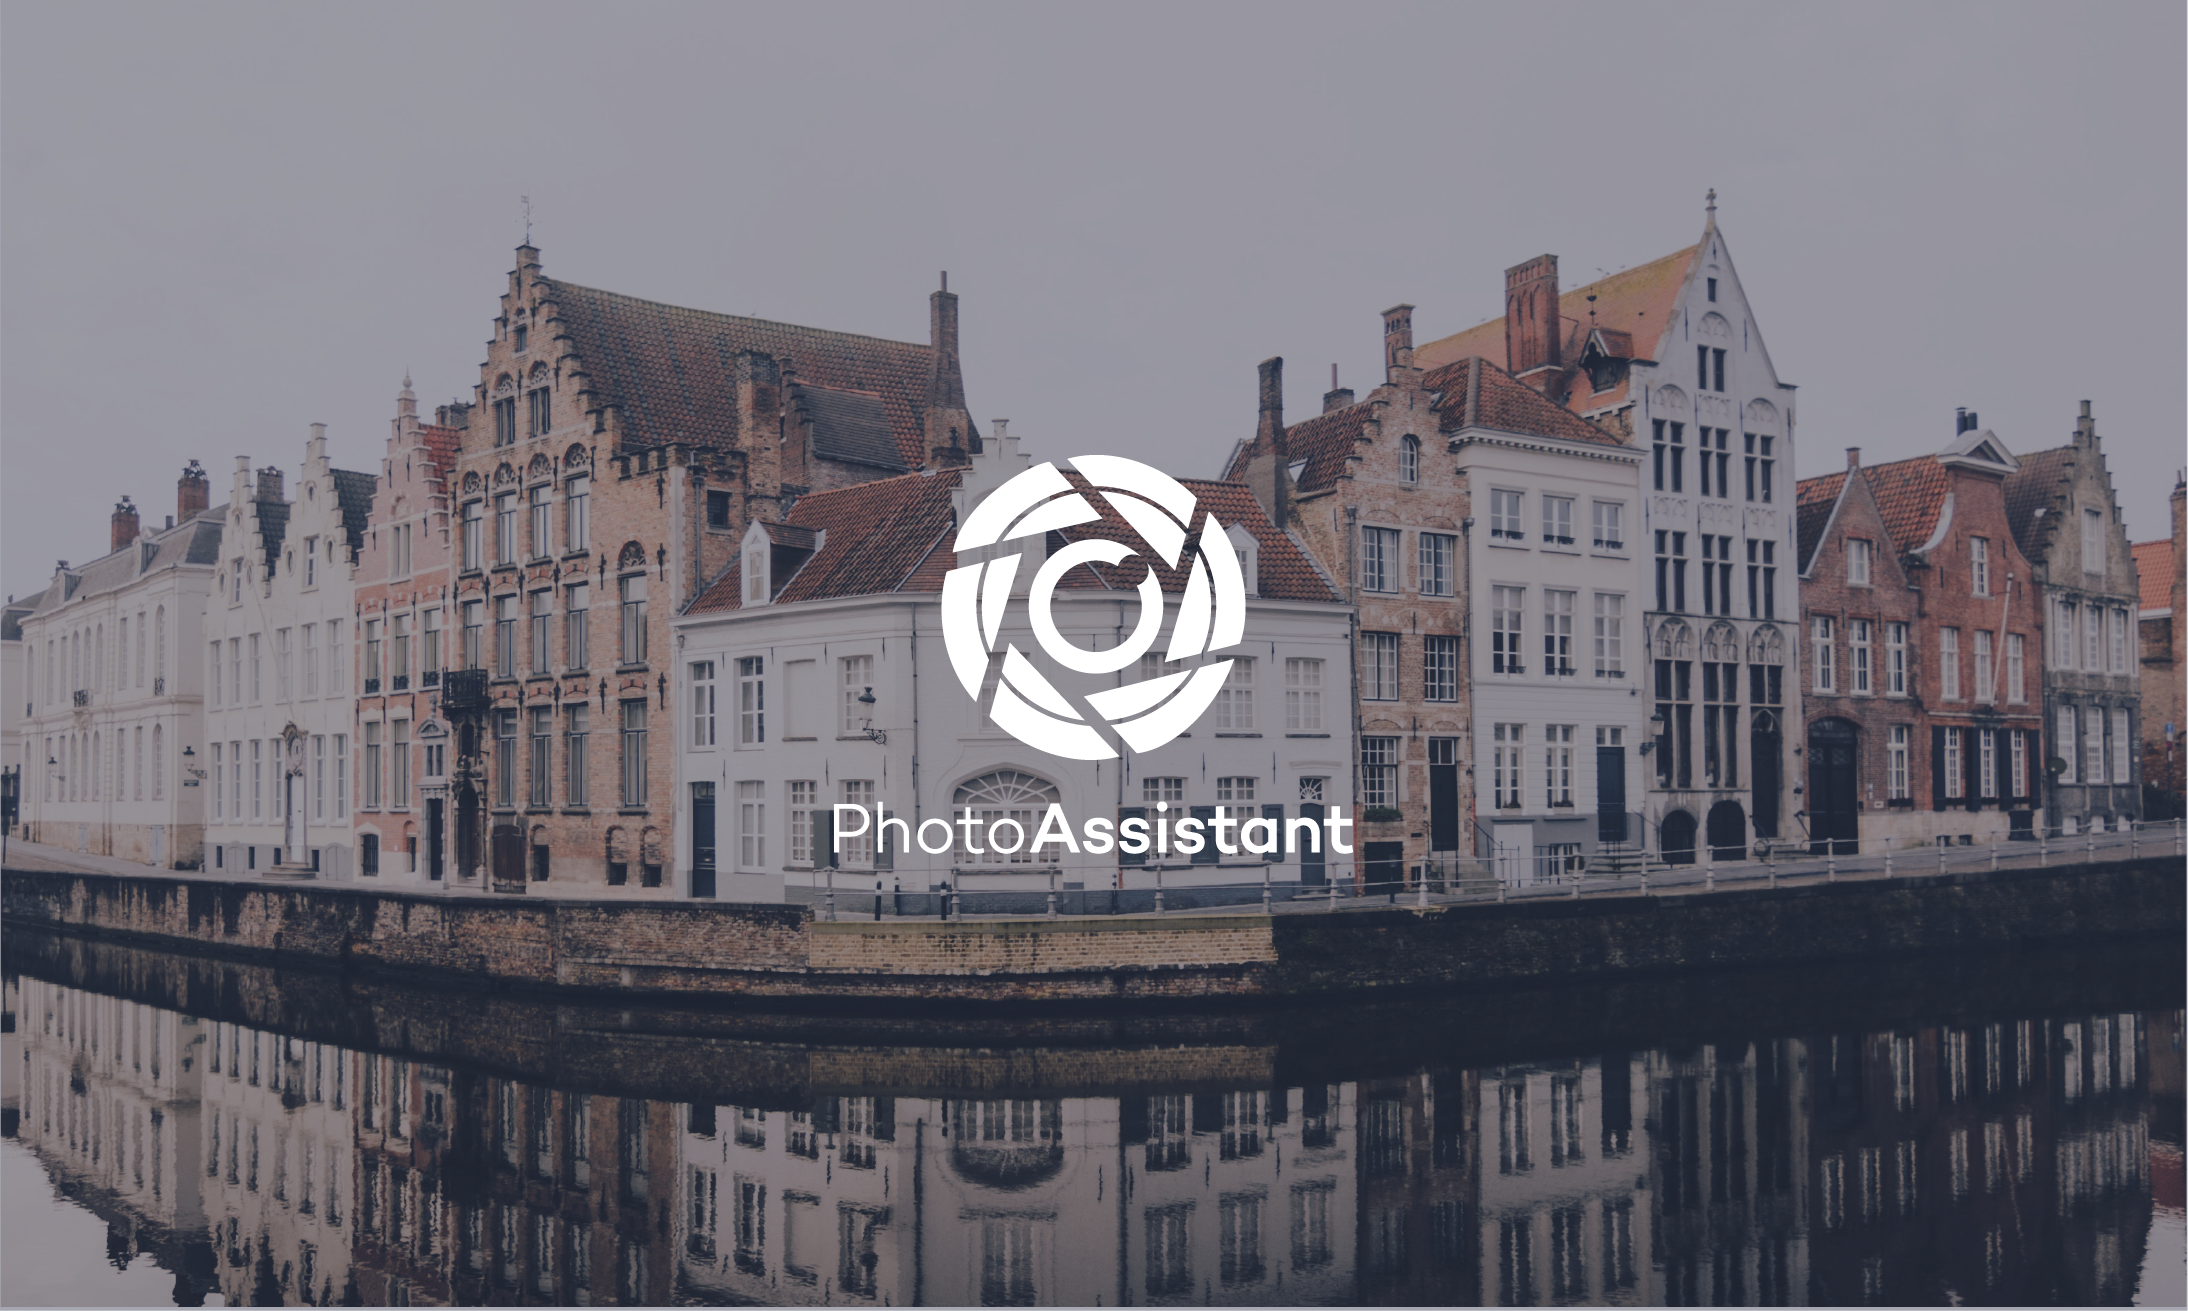 PhotoAssistant